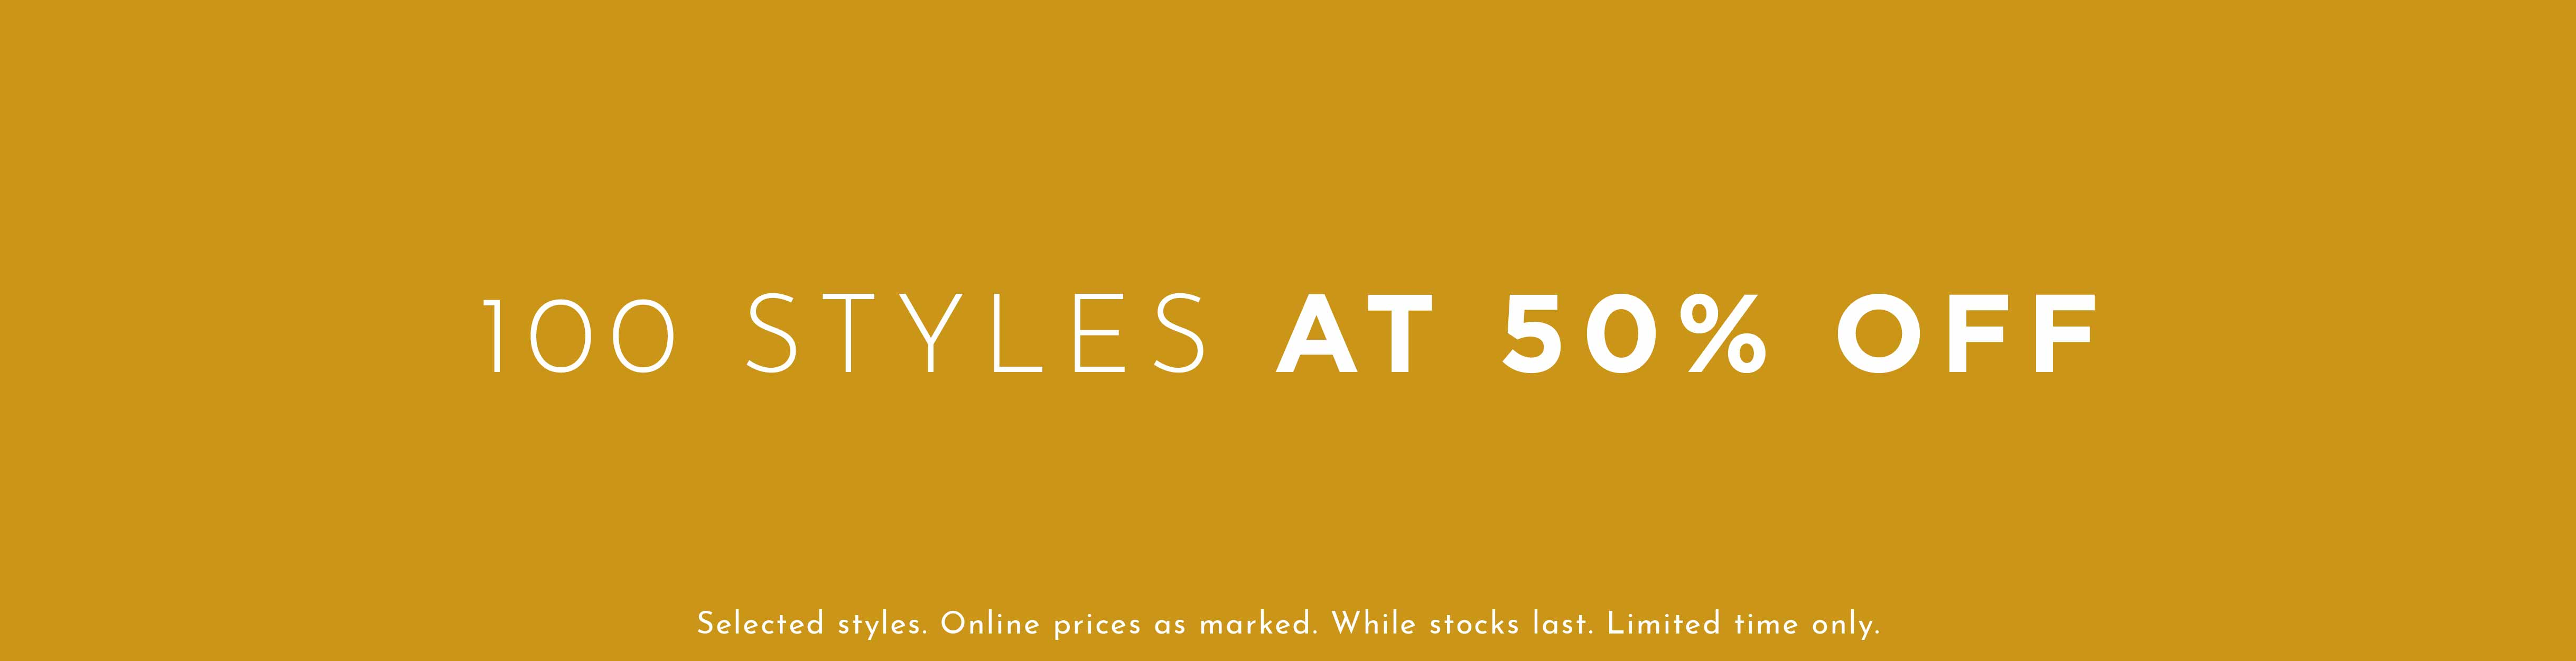 100 Styles at 50% Off